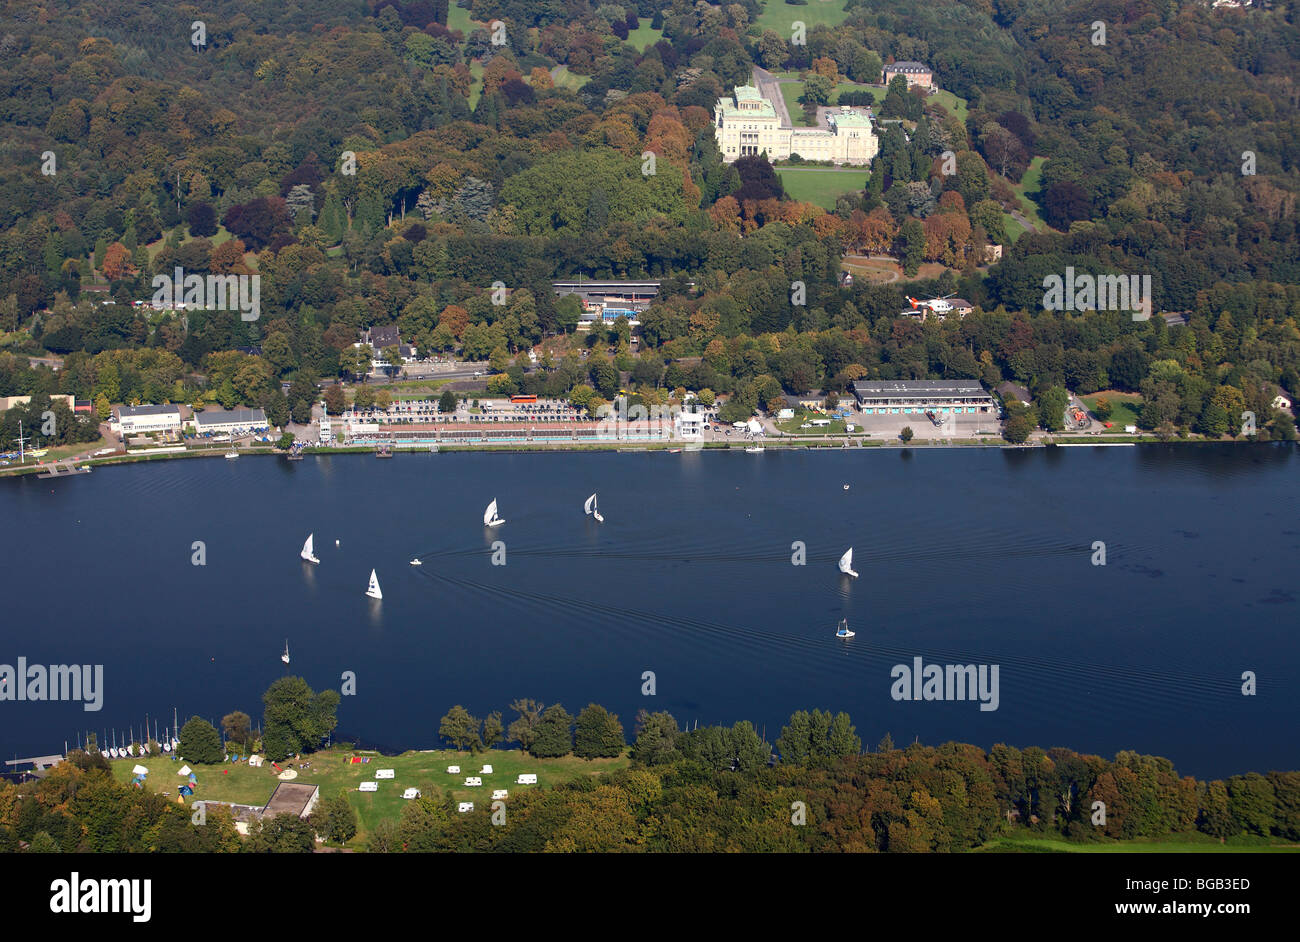 Baldeney sea, Ruhr river, Essen, Germany, NRW, Europe. Stock Photo